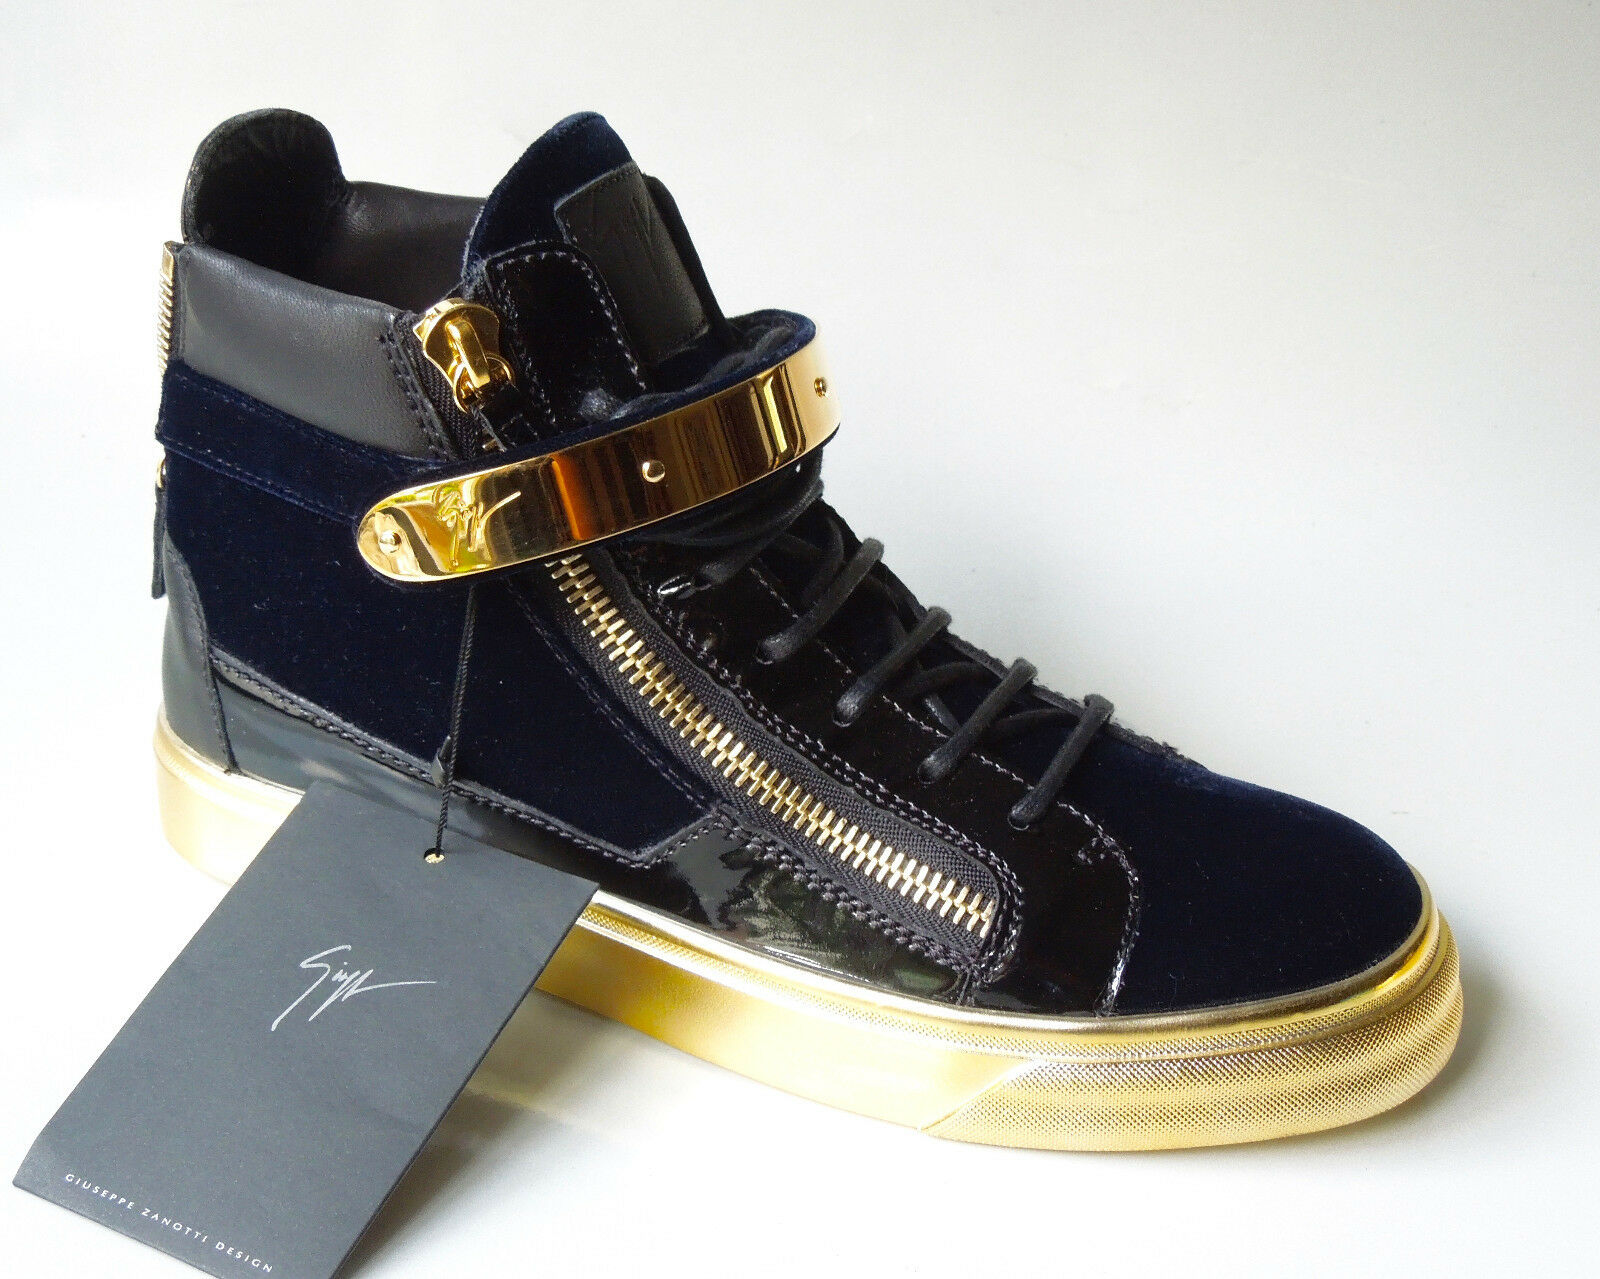 New  1050 Giuseppe ZANOTTI London Veronica bluee HighTop sneakers boots 39.5 9.5